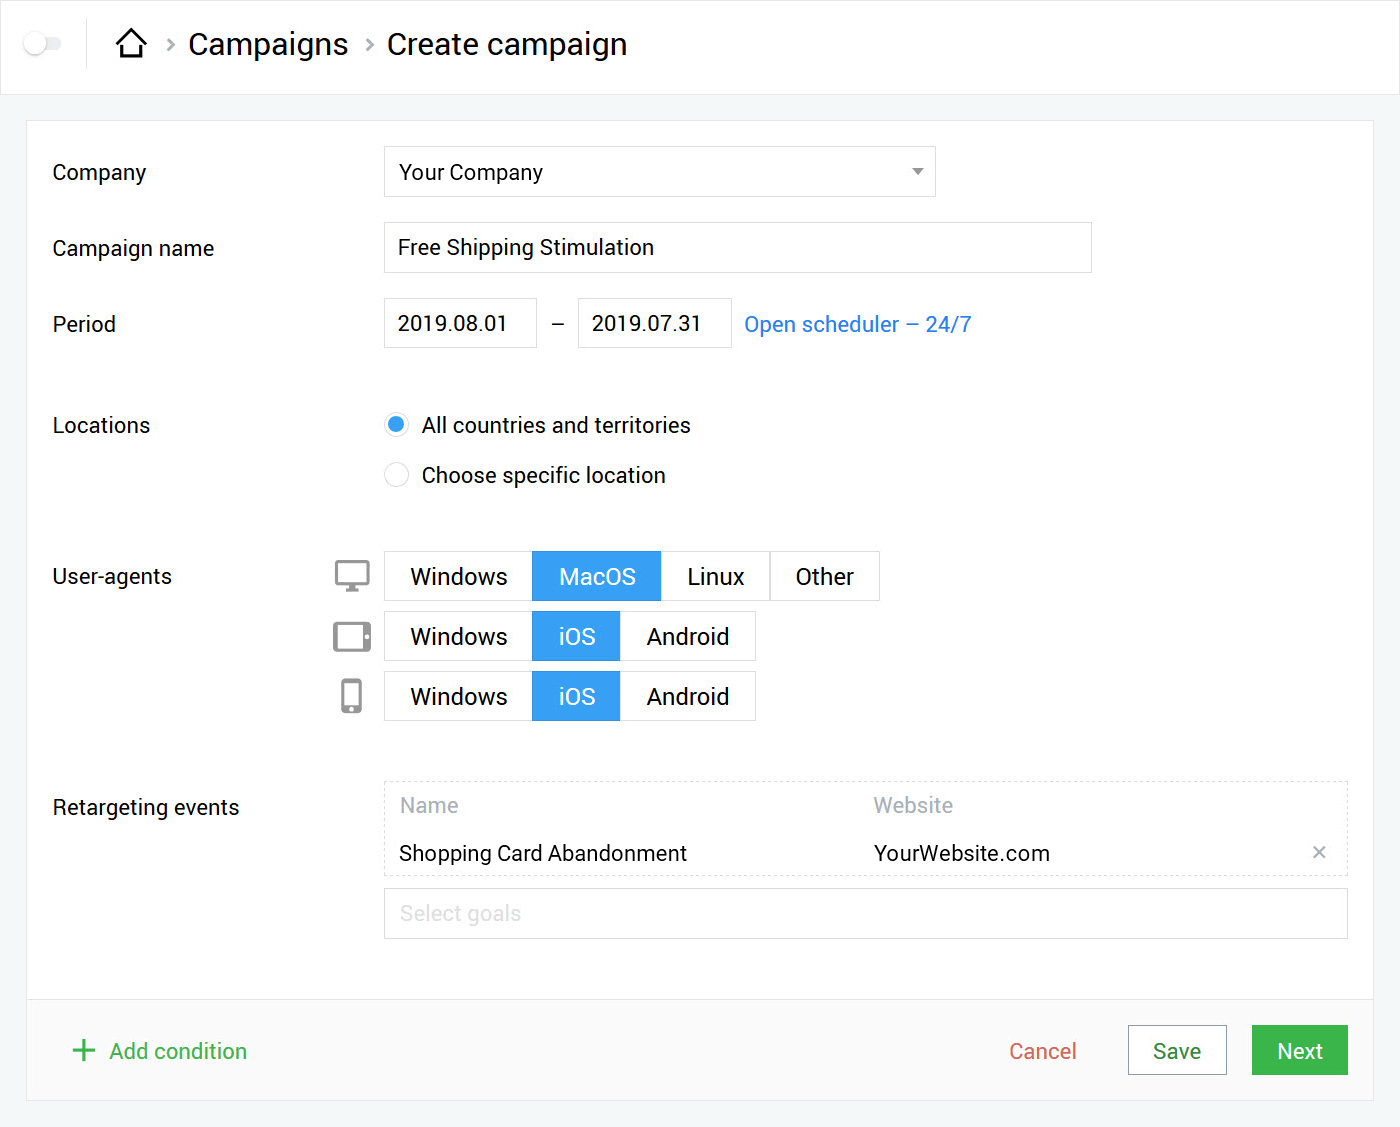 Creating a campaign with the retargeting option